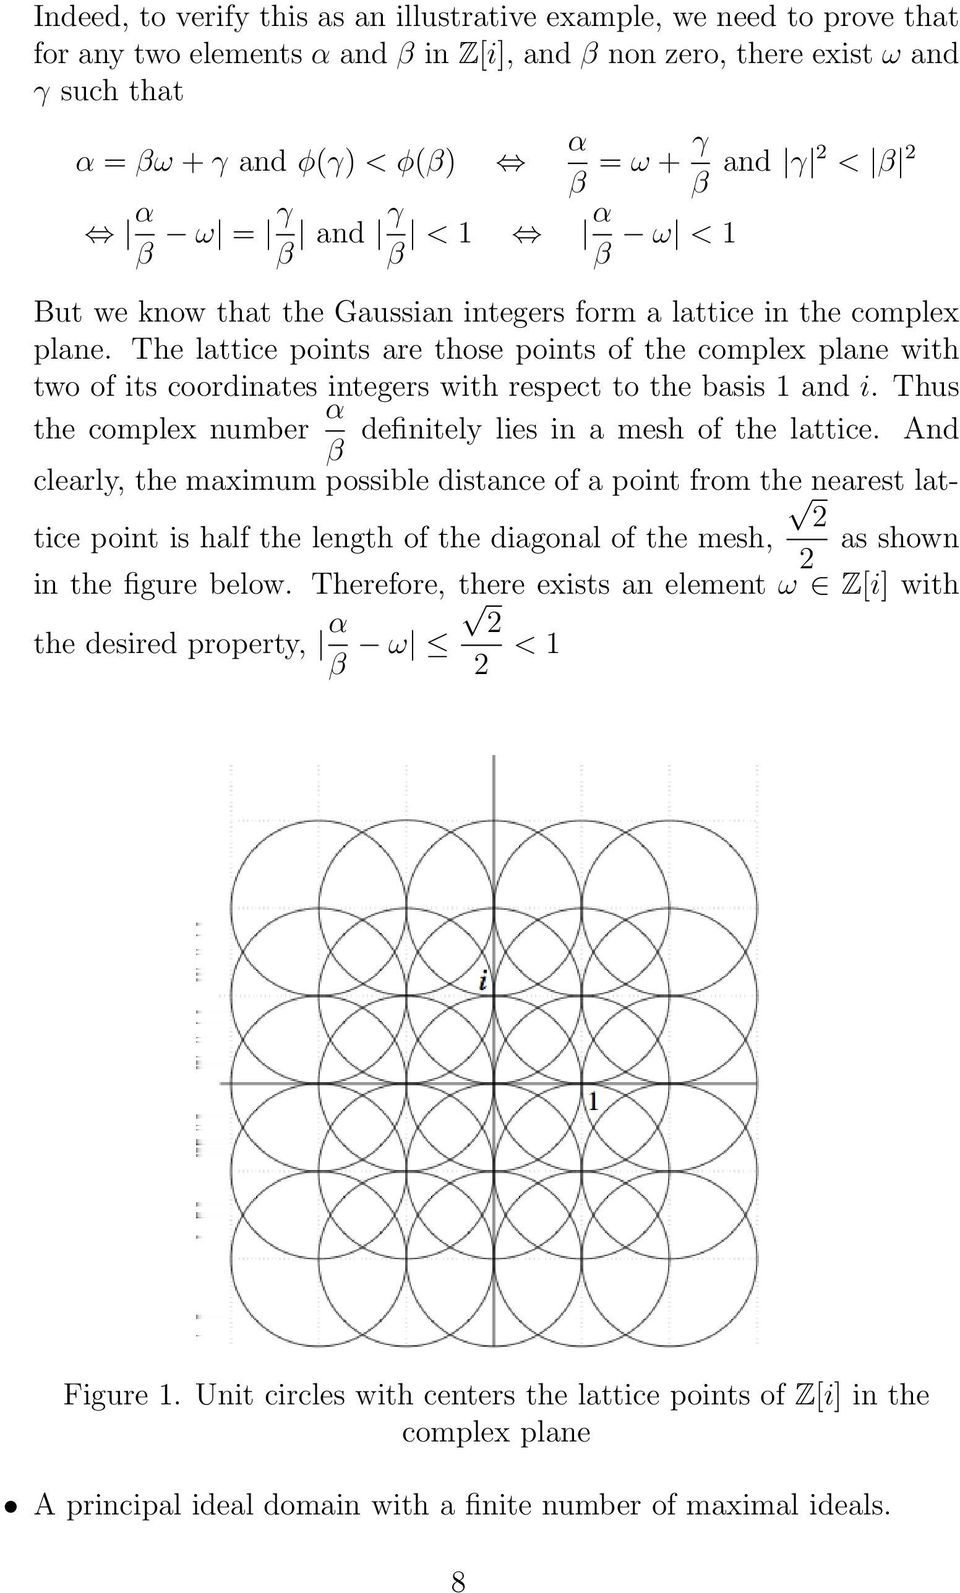 The lattice points are those points of the complex plane with two of its coordinates integers with respect to the basis 1 and i. Thus the complex number α definitely lies in a mesh of the lattice.